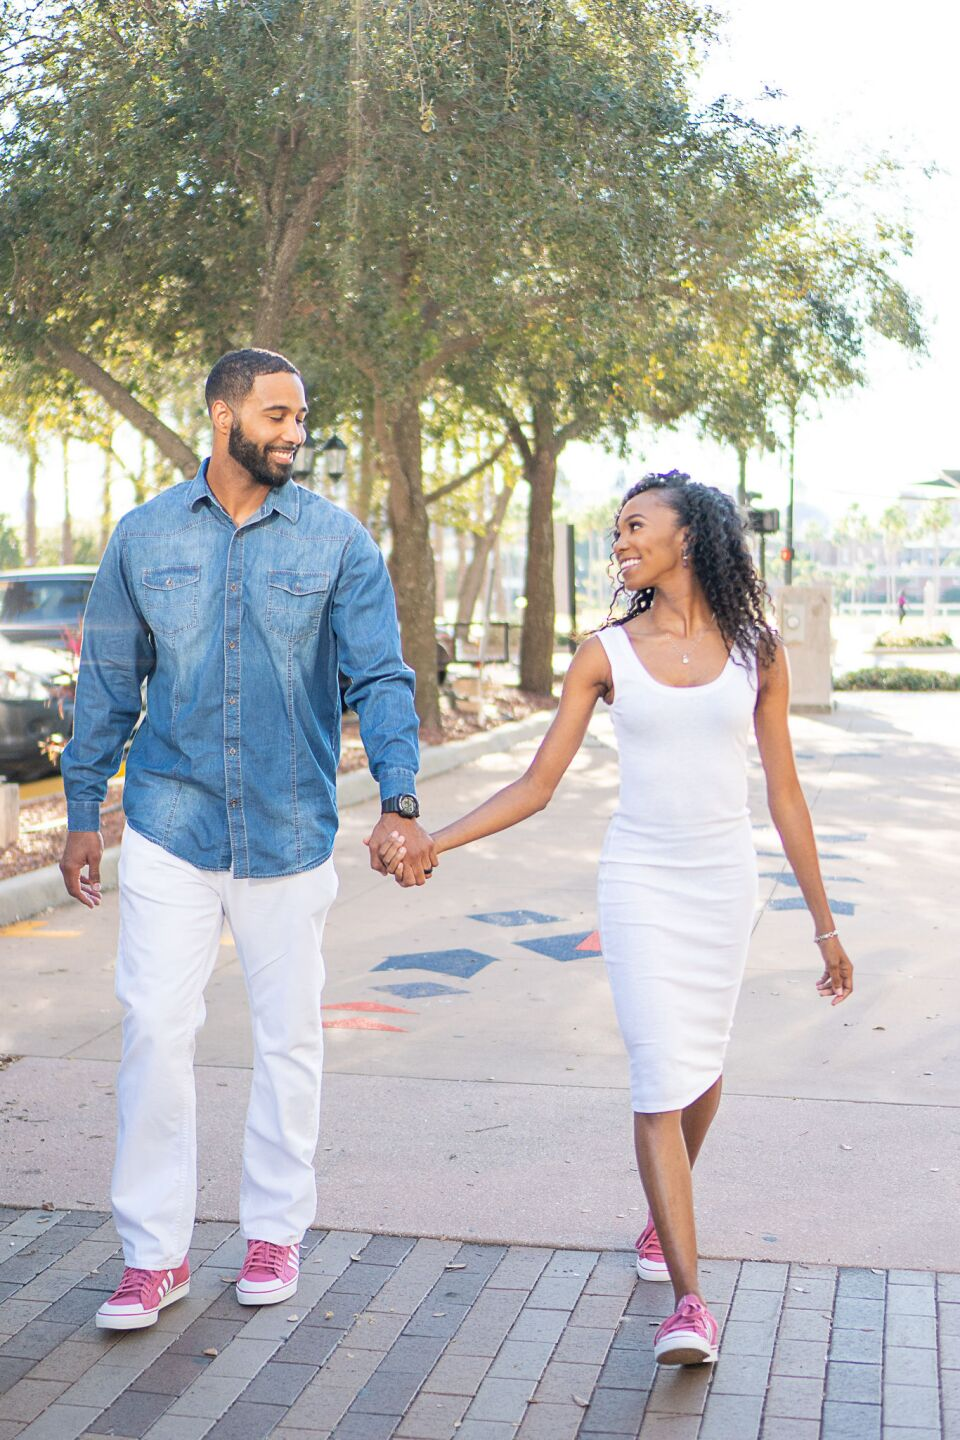 Downtown Tampa Couple 2 Ashley Canay Photography.jpg